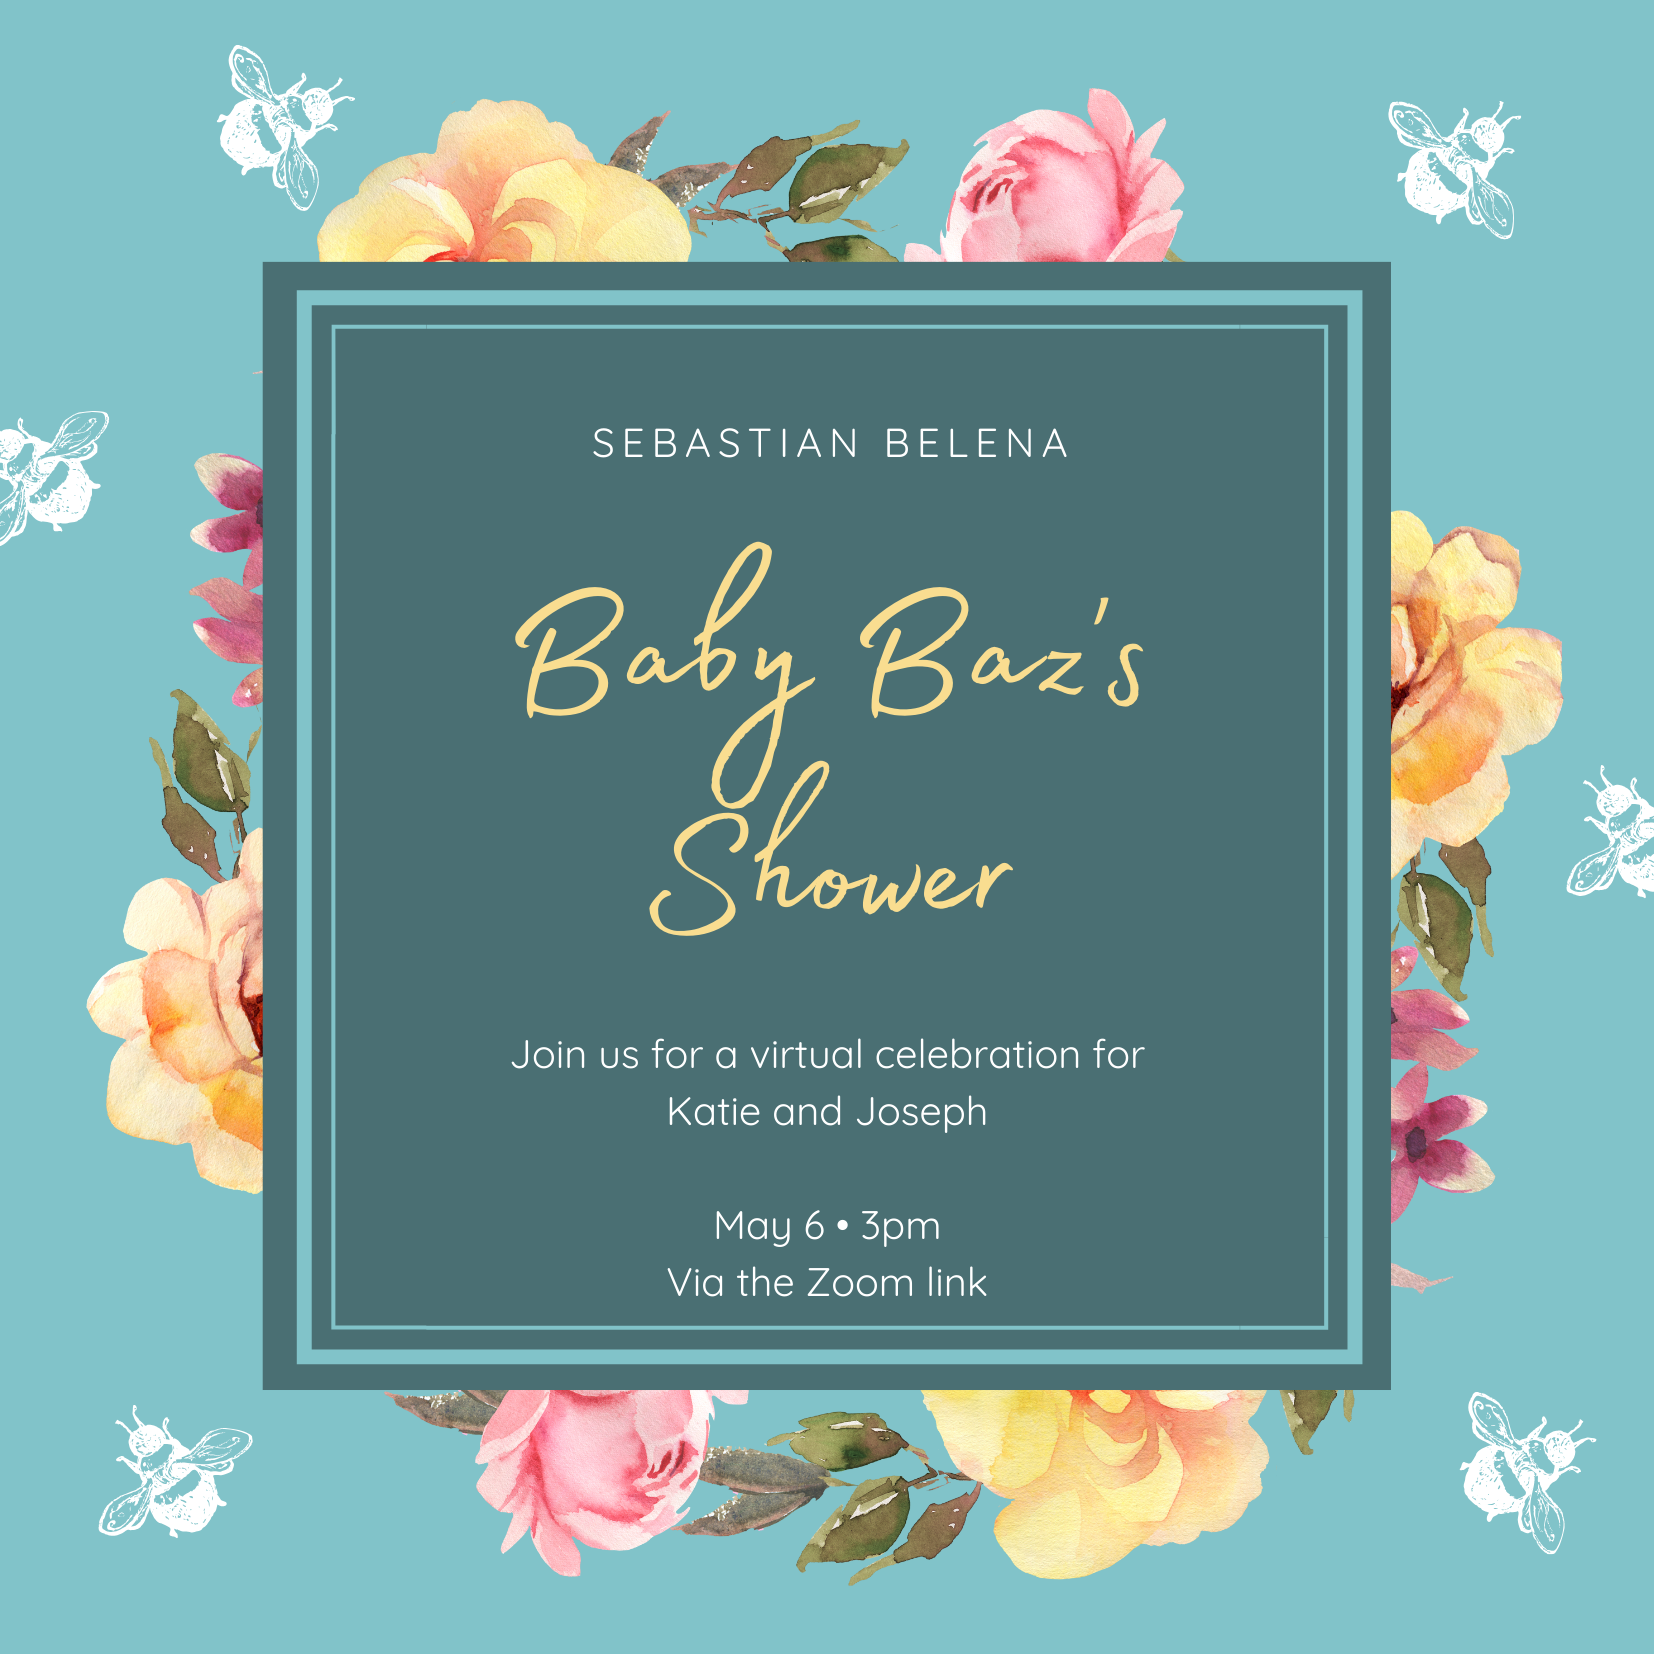 Baby Baz's Shower - Virtual Events